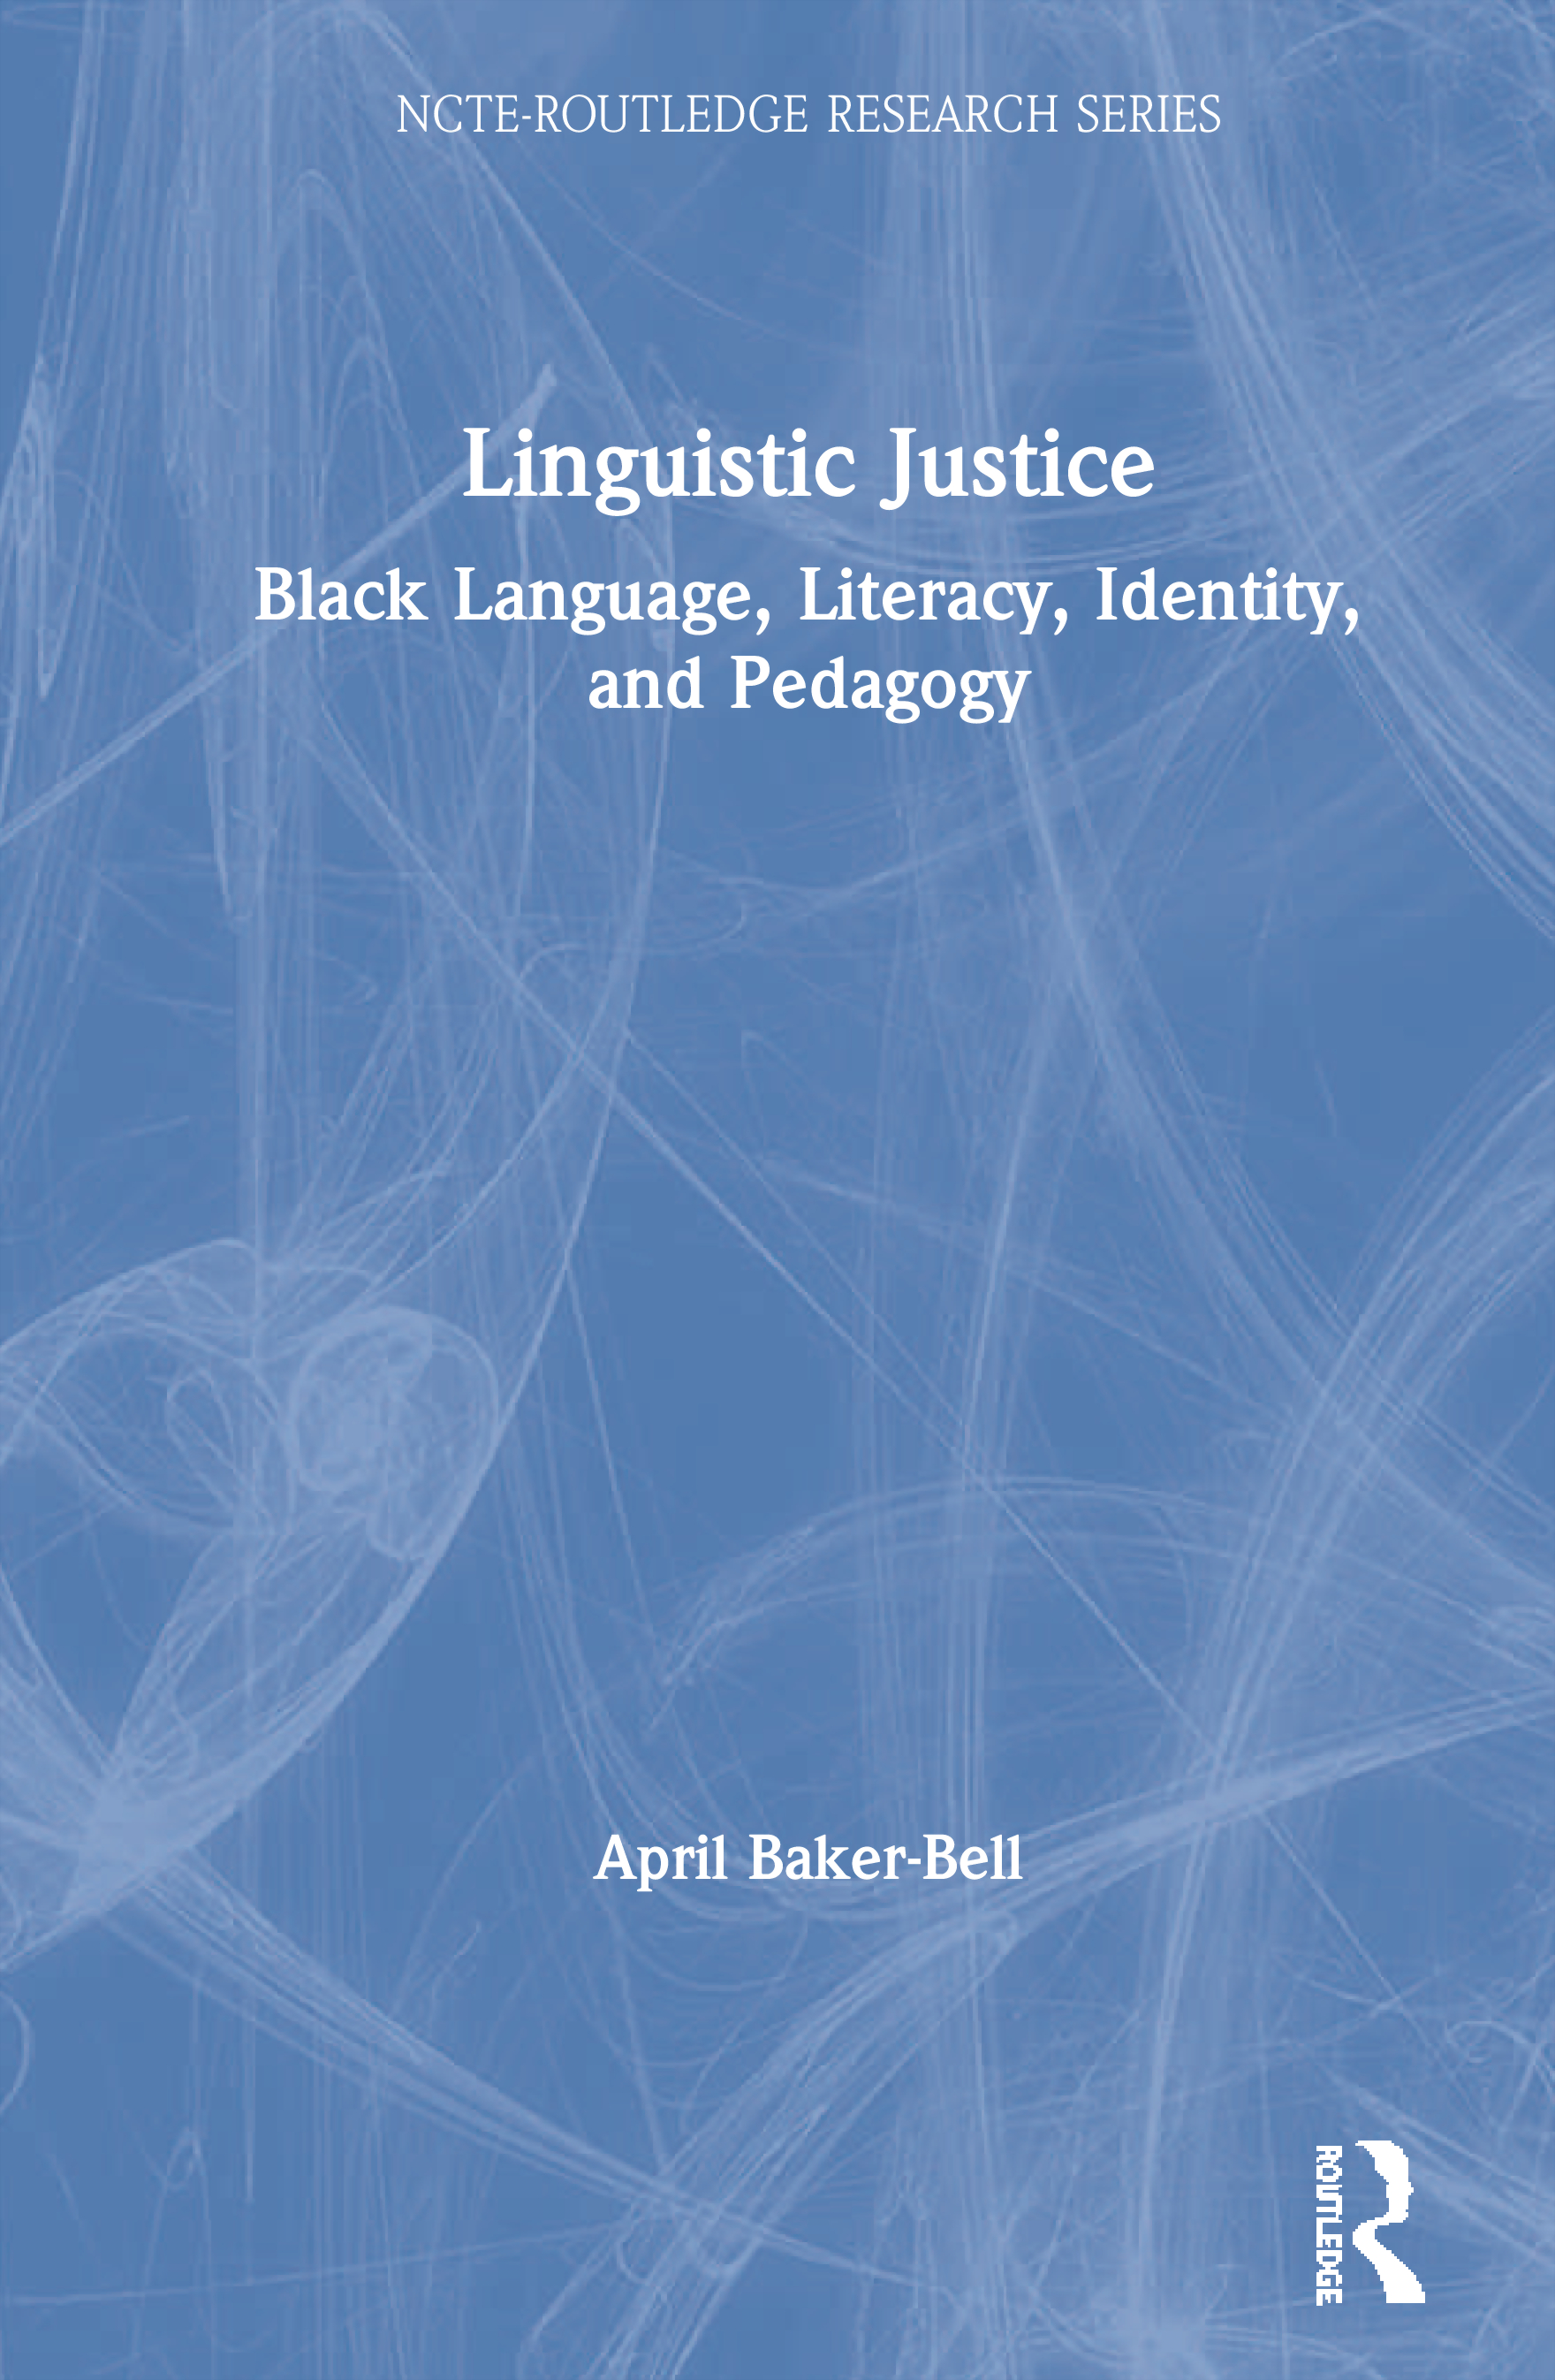 Linguistic Justice: Black Language, Literacy, Identity, and Pedagogy book cover